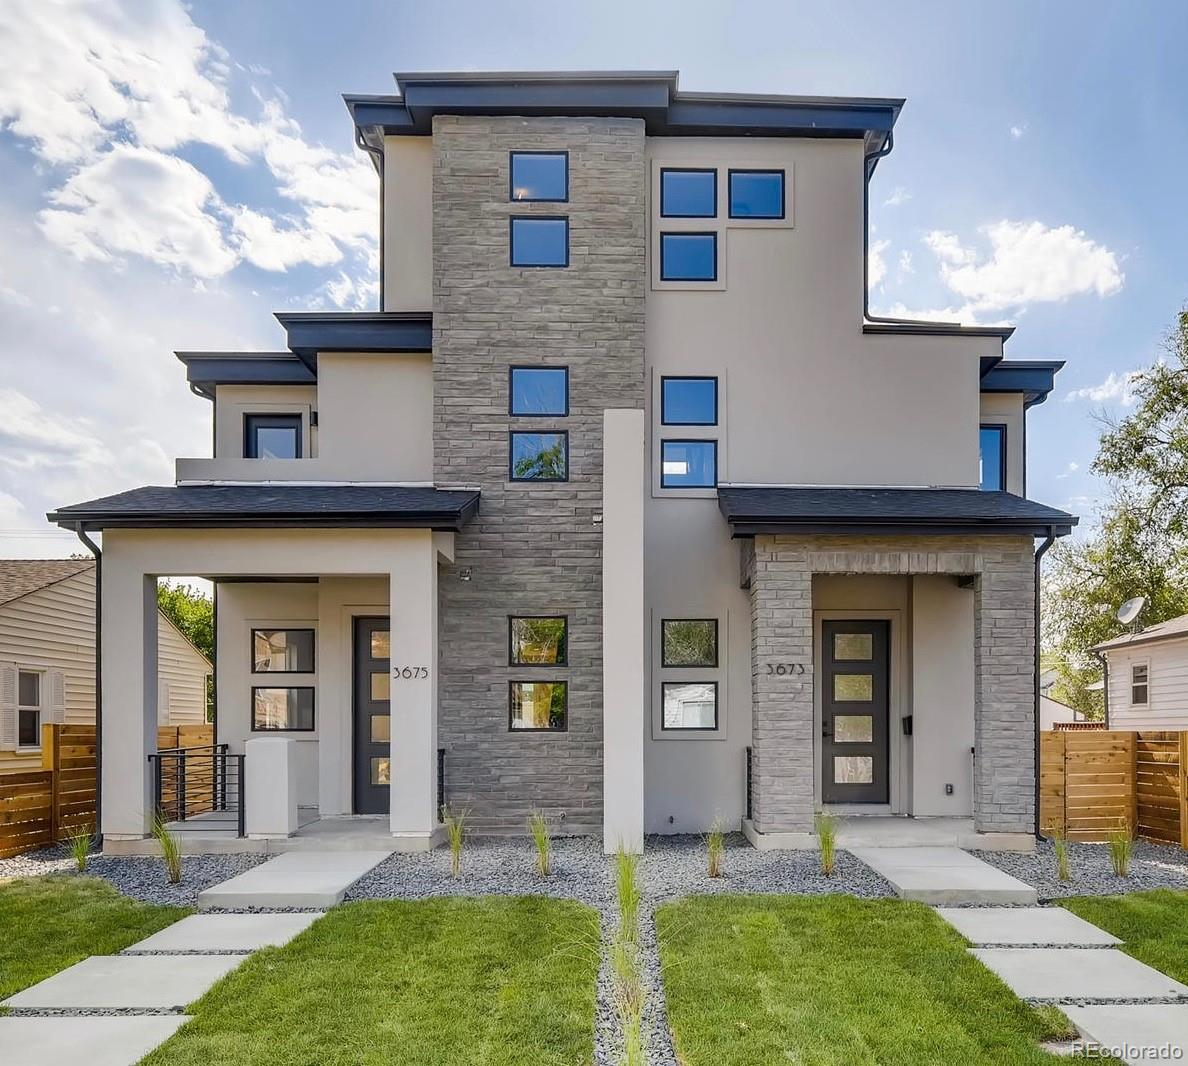 3675 S Fox Street Property Photo - Englewood, CO real estate listing